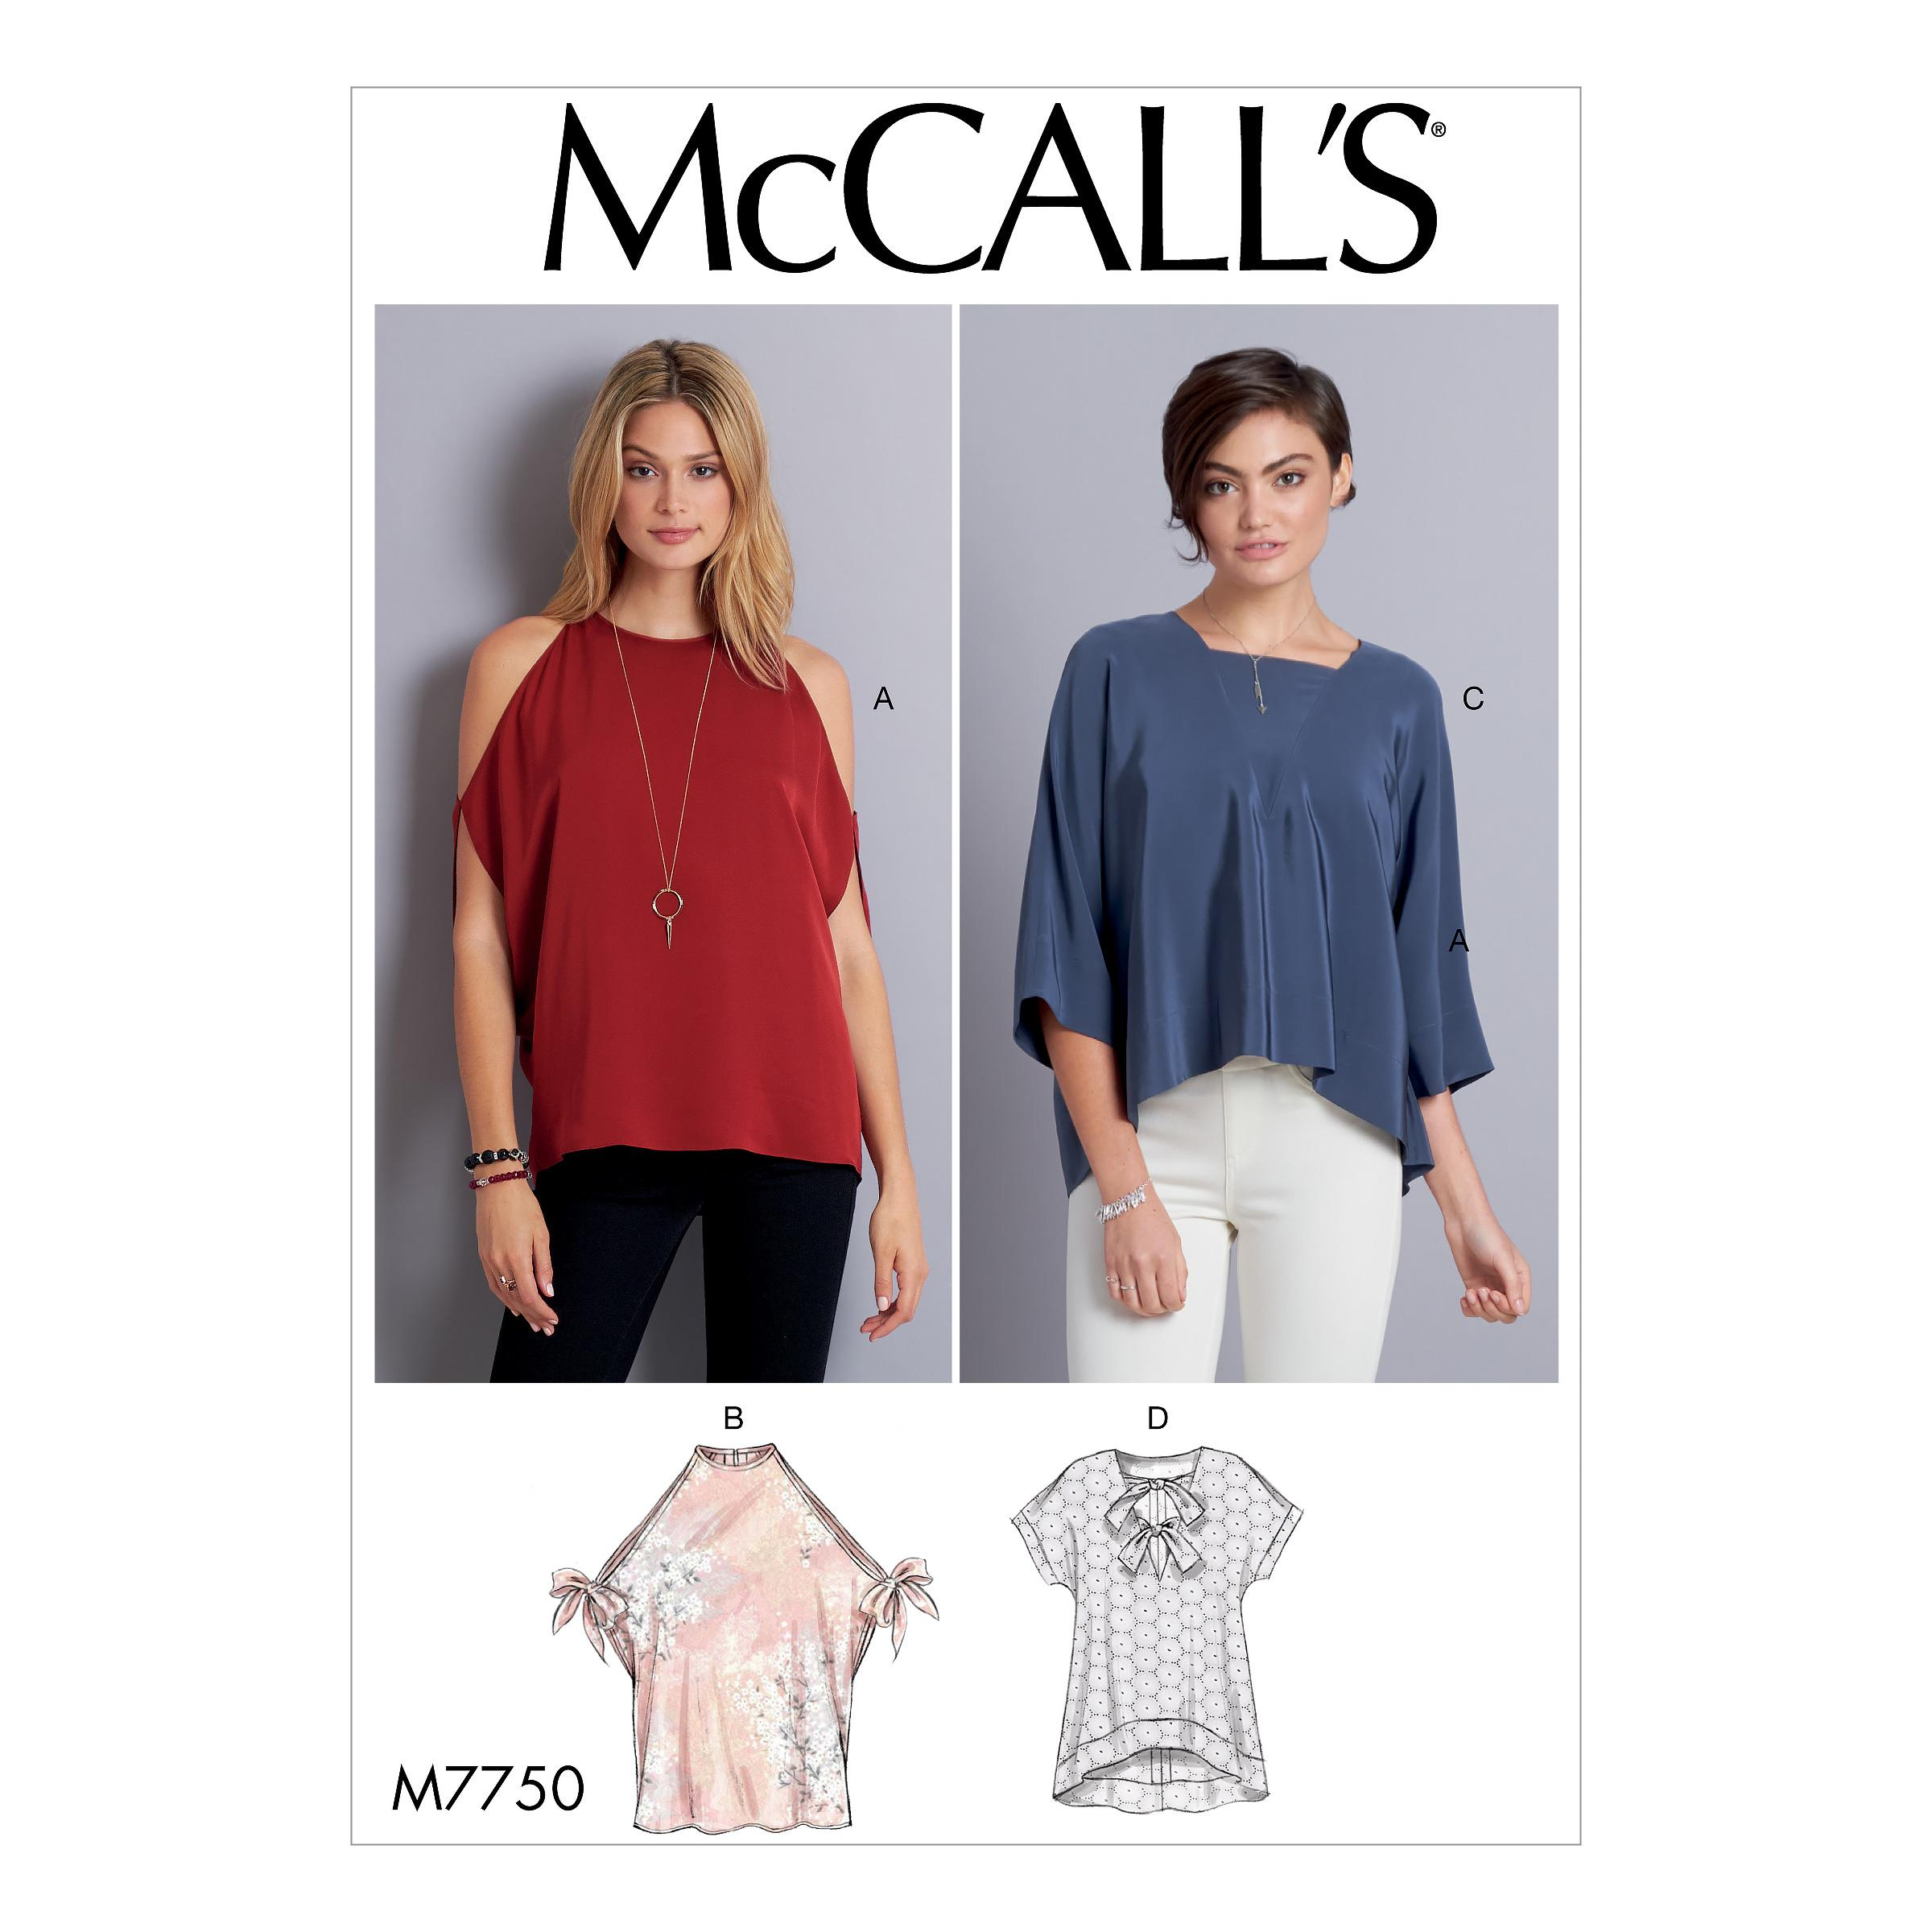 McCalls M7750 Misses Tops